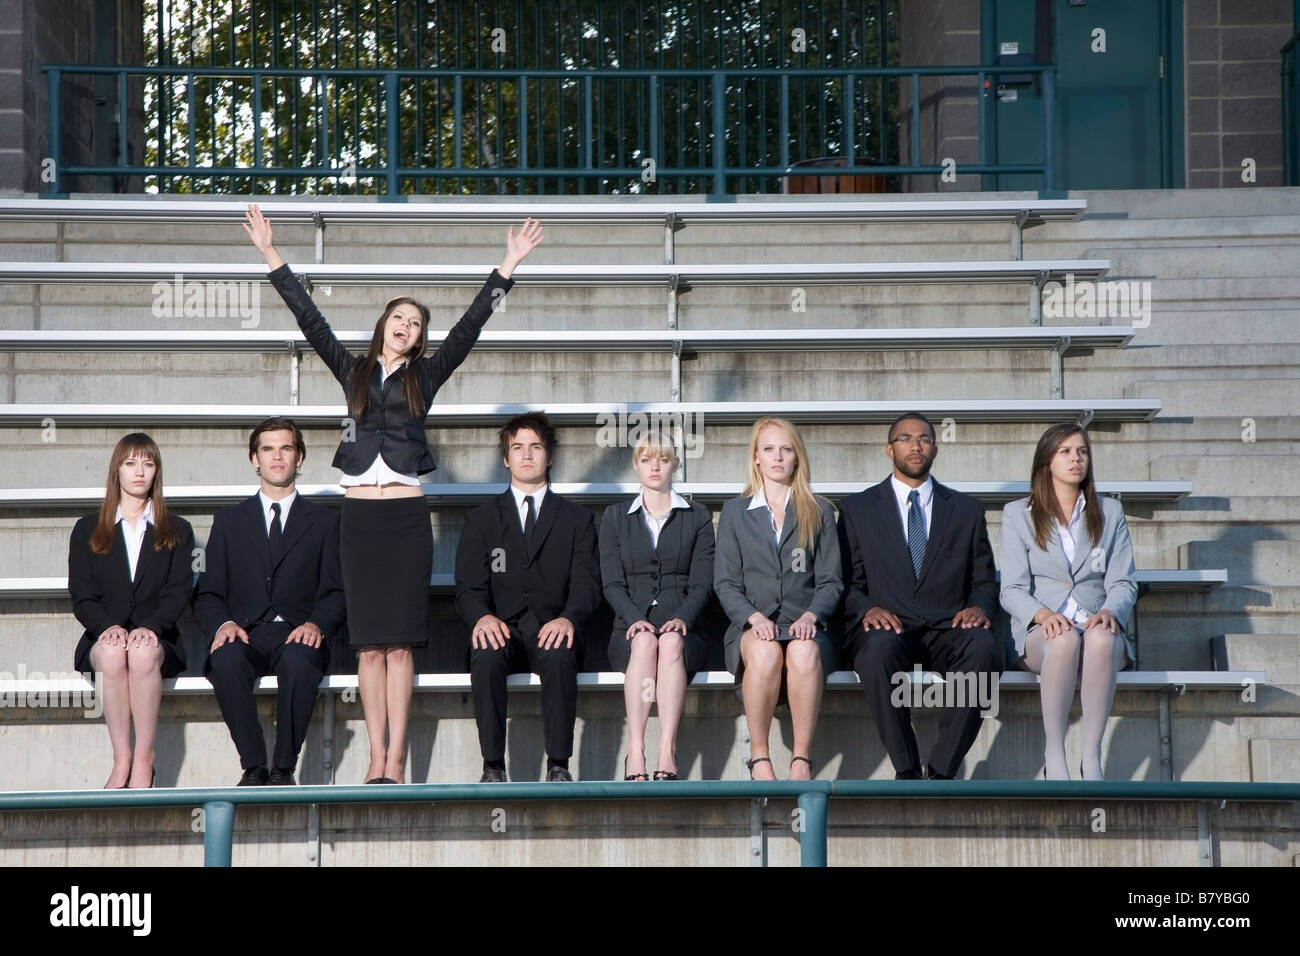 Businesswoman cheering in the stands among unmoving business people - Stock Image